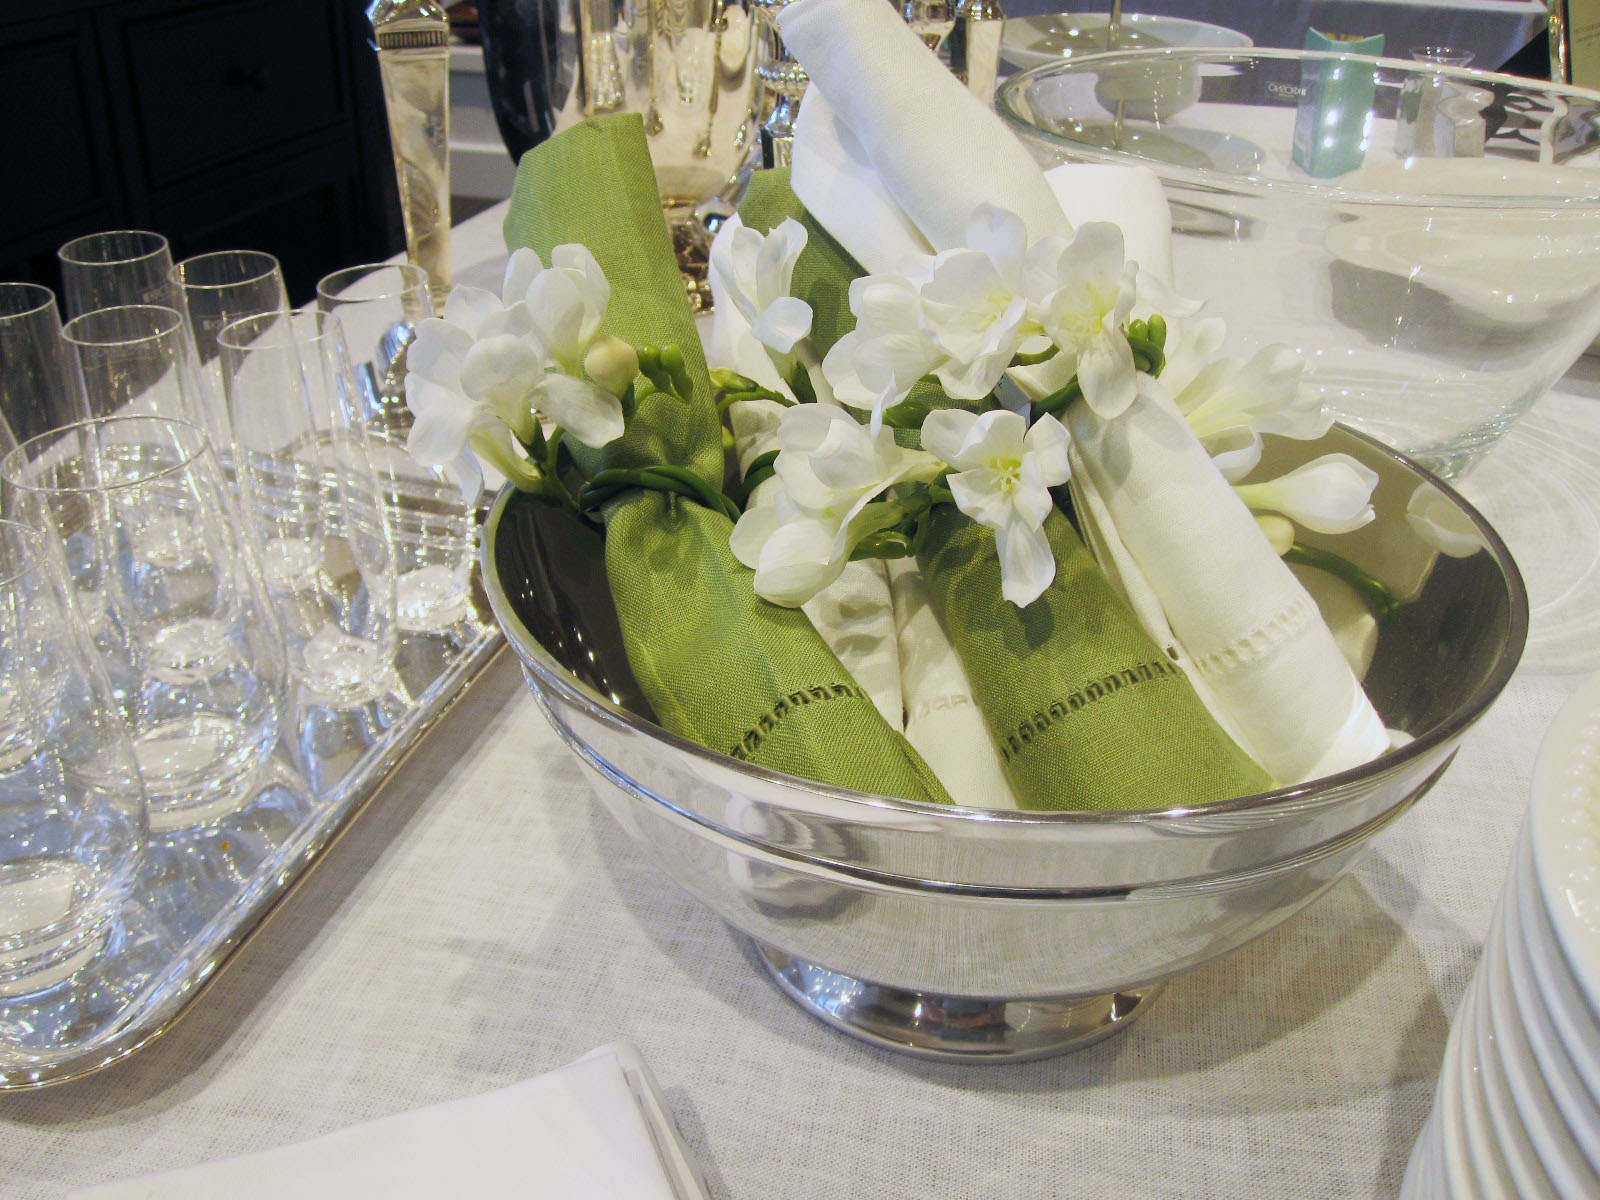 how to wrap silverware in paper napkins for buffet